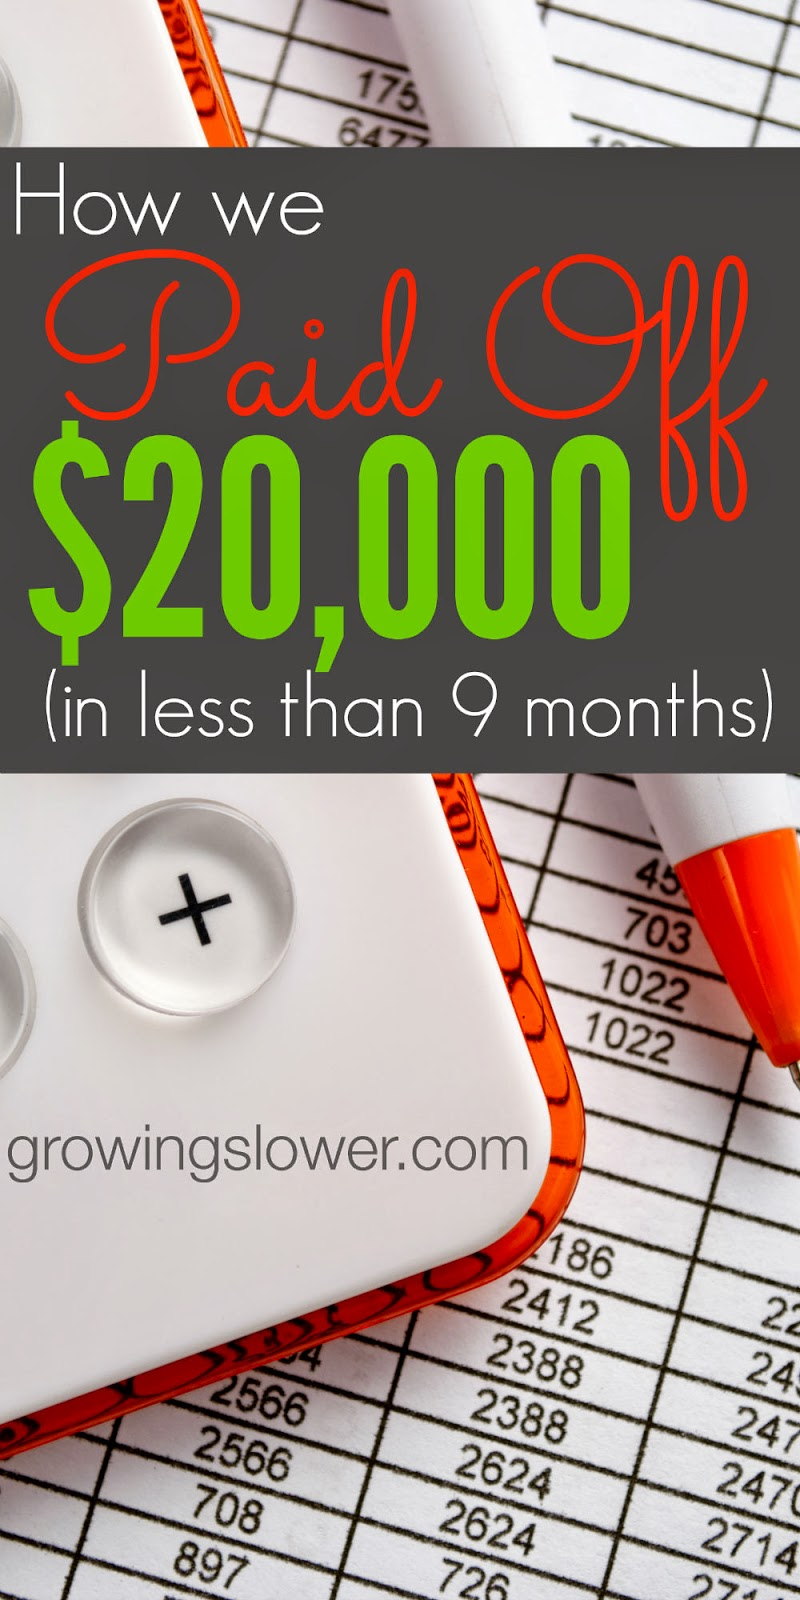 The story of how one family paid off over $20k ($22,047.93 to be exact!) in less than 9 months on one income, plus 9 crazy things they did to be debt free. www.growingslower.com #debtfree #frugalliving